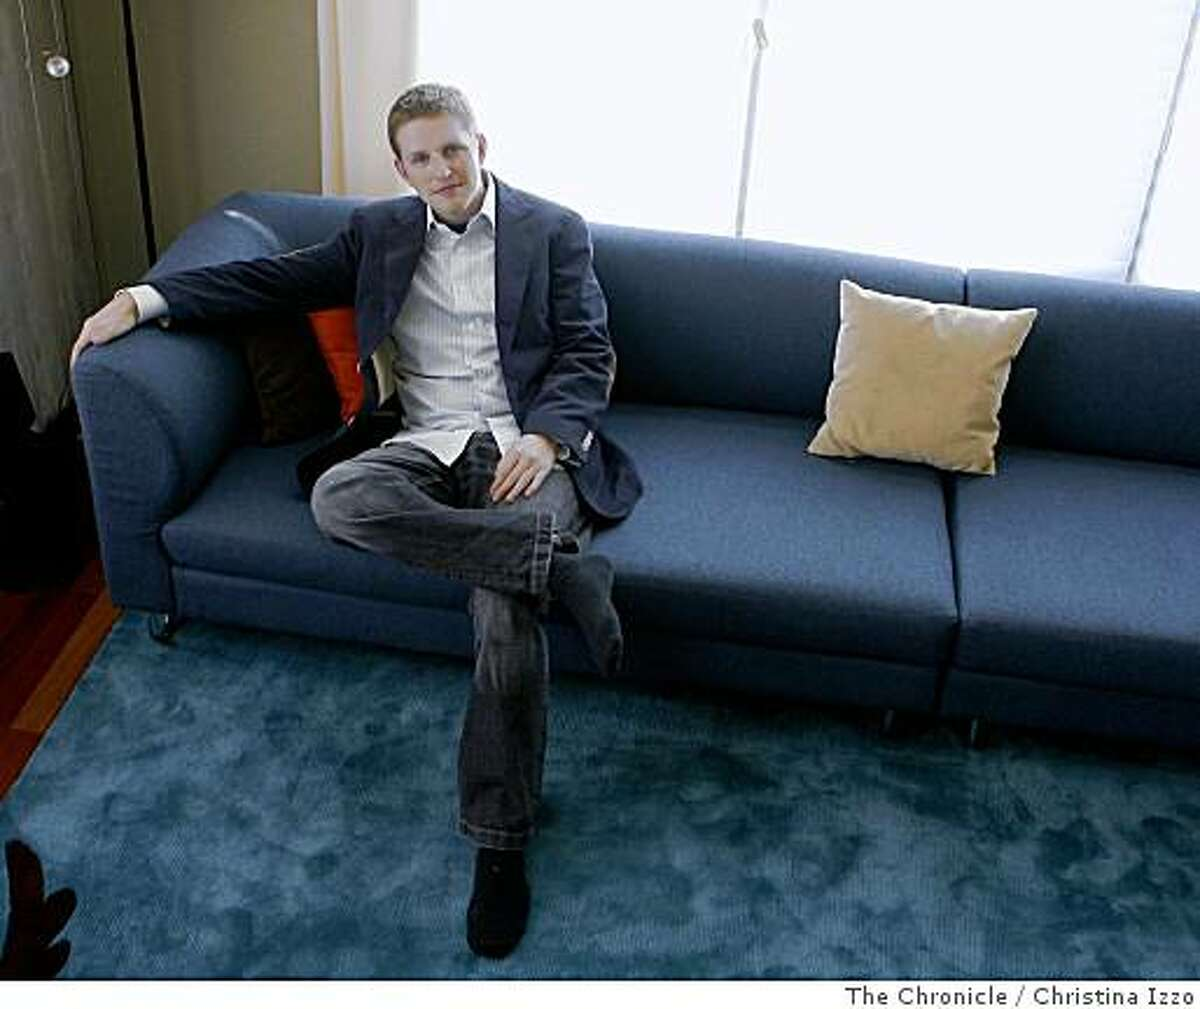 Matt Mullenweg, 24, who just landed $29.5 million in funding for his program WordPress, relaxes in his home on Wednesday, June 25, 2008, in San Francisco, Calif. Photo by Christina Izzo / The Chronicle